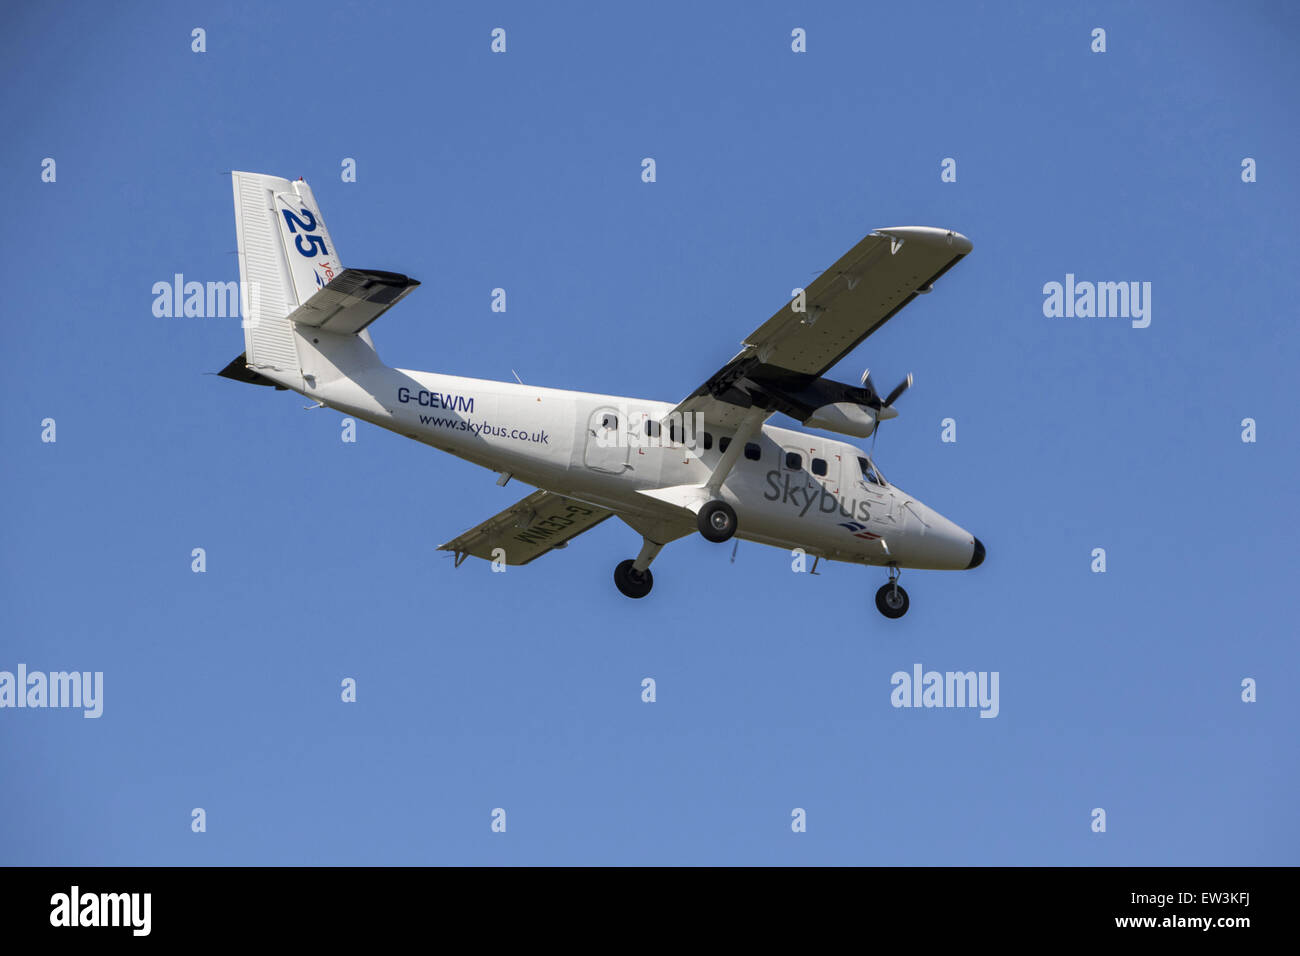 Isle of Scilly Skybus De Havilland Canada DHC-6 Twin Otter Series 310. This is the plane that bird watching visitors - Stock Image